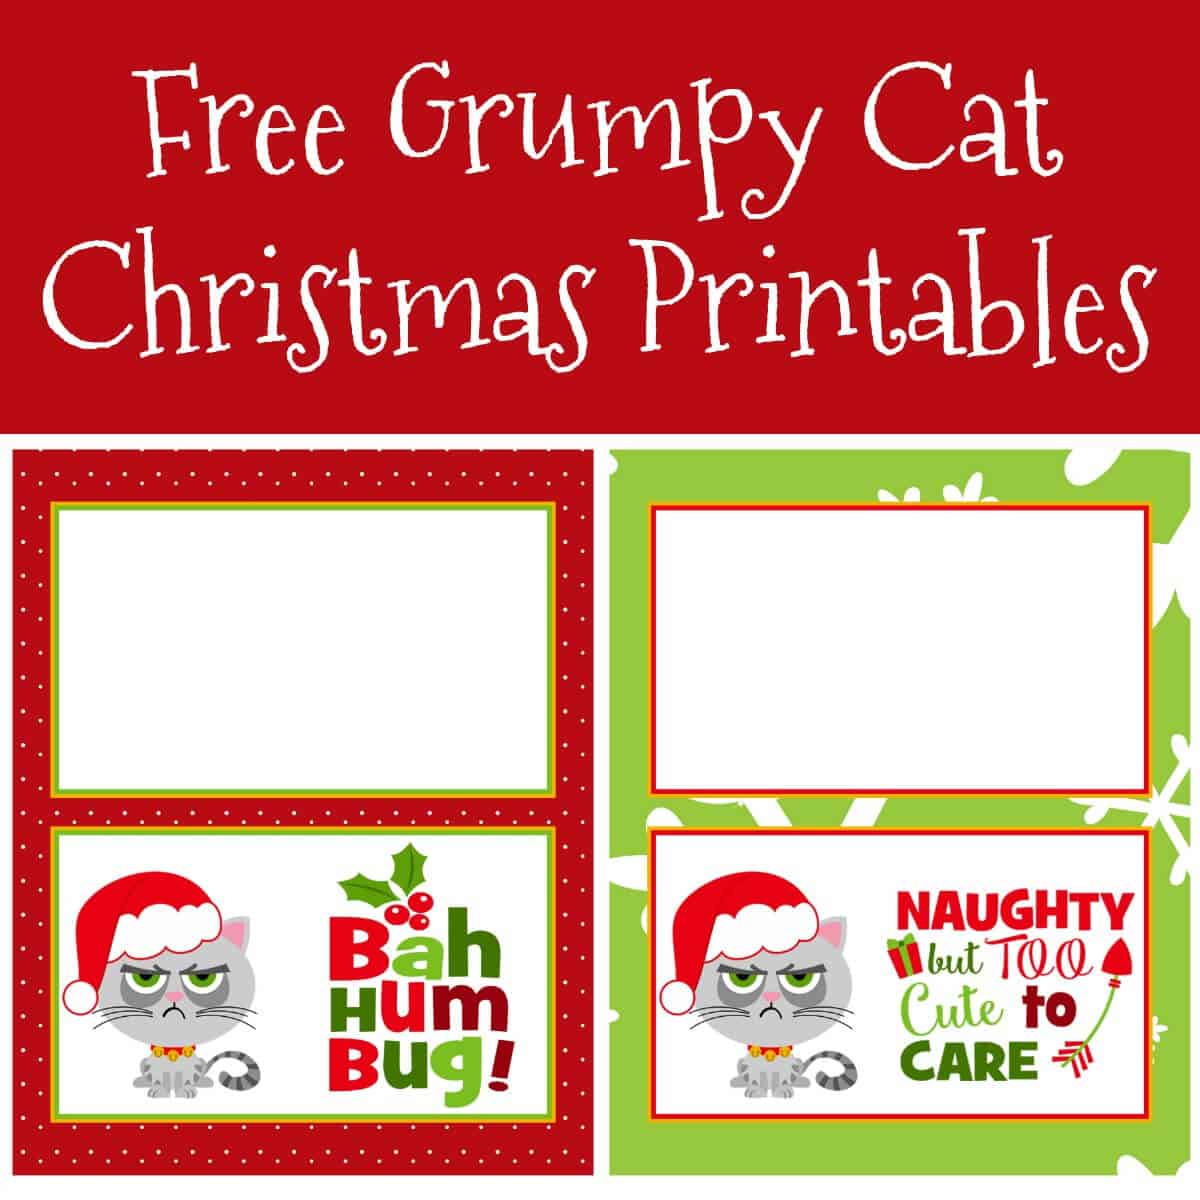 Have fun this holiday season with these free Grumpy Cat Christmas printables! Print on sticker paper for your gift giving and make people smile.